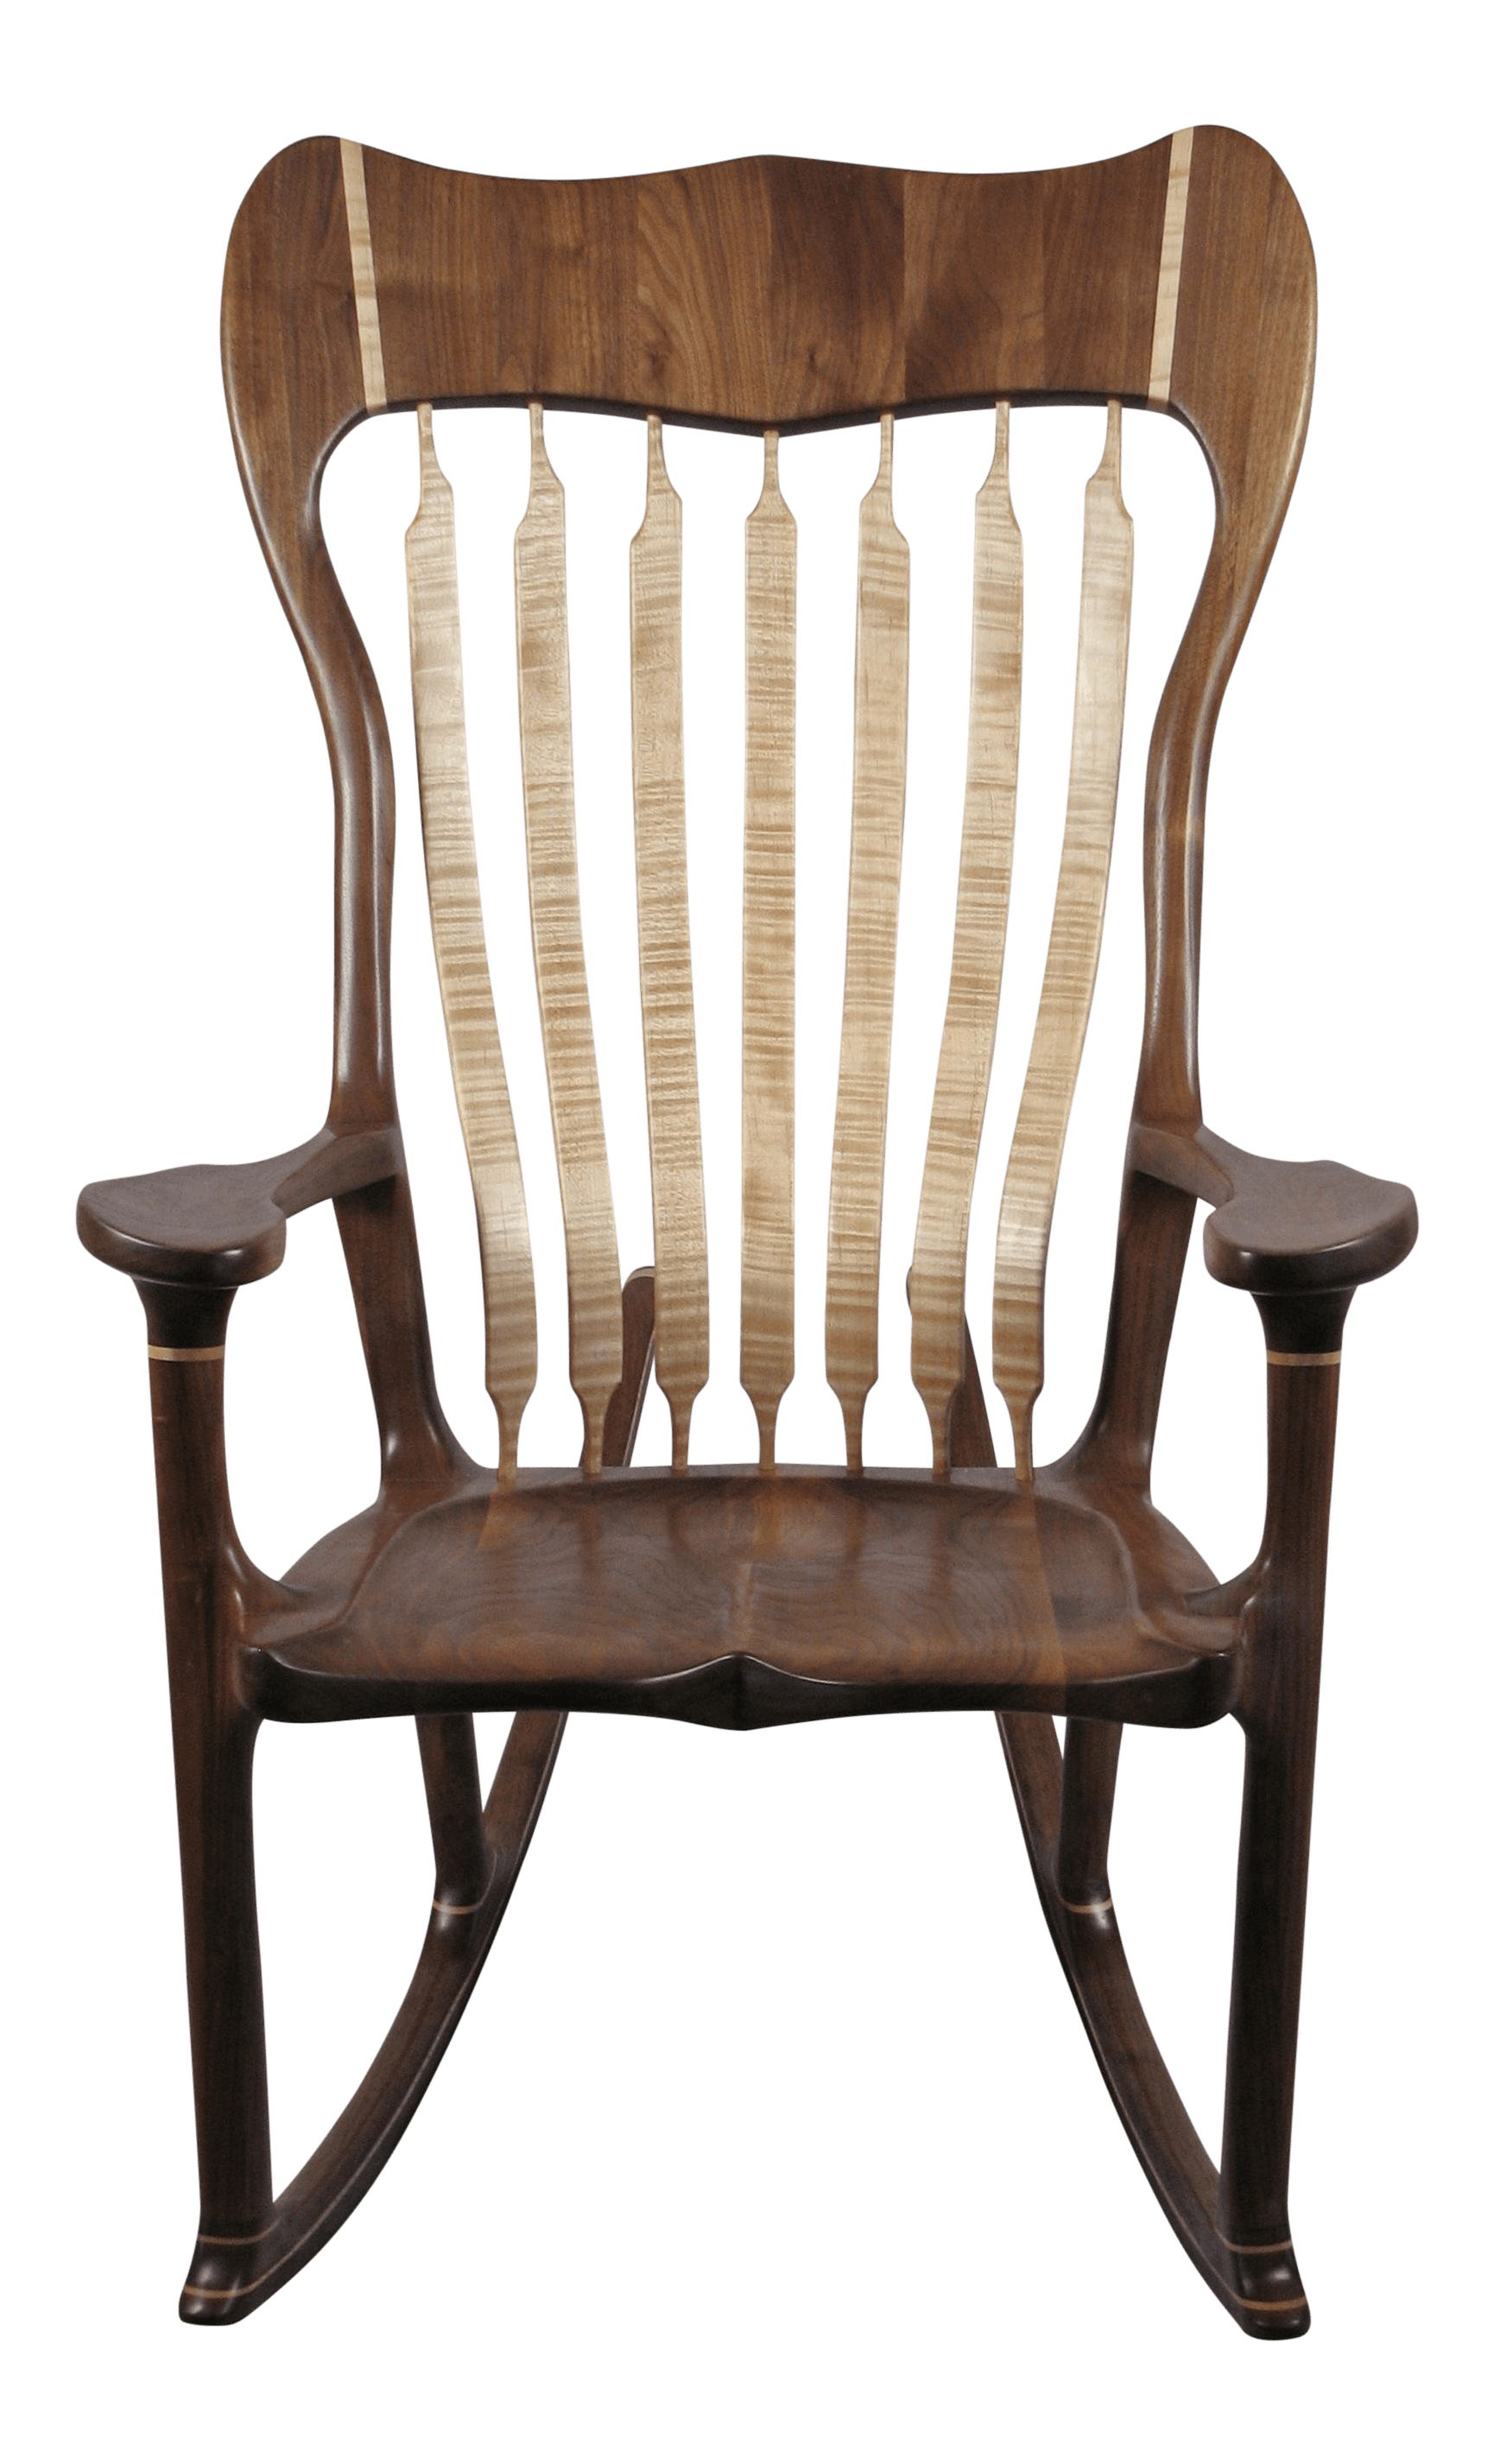 Maloof Style Rocking Chair For Sale